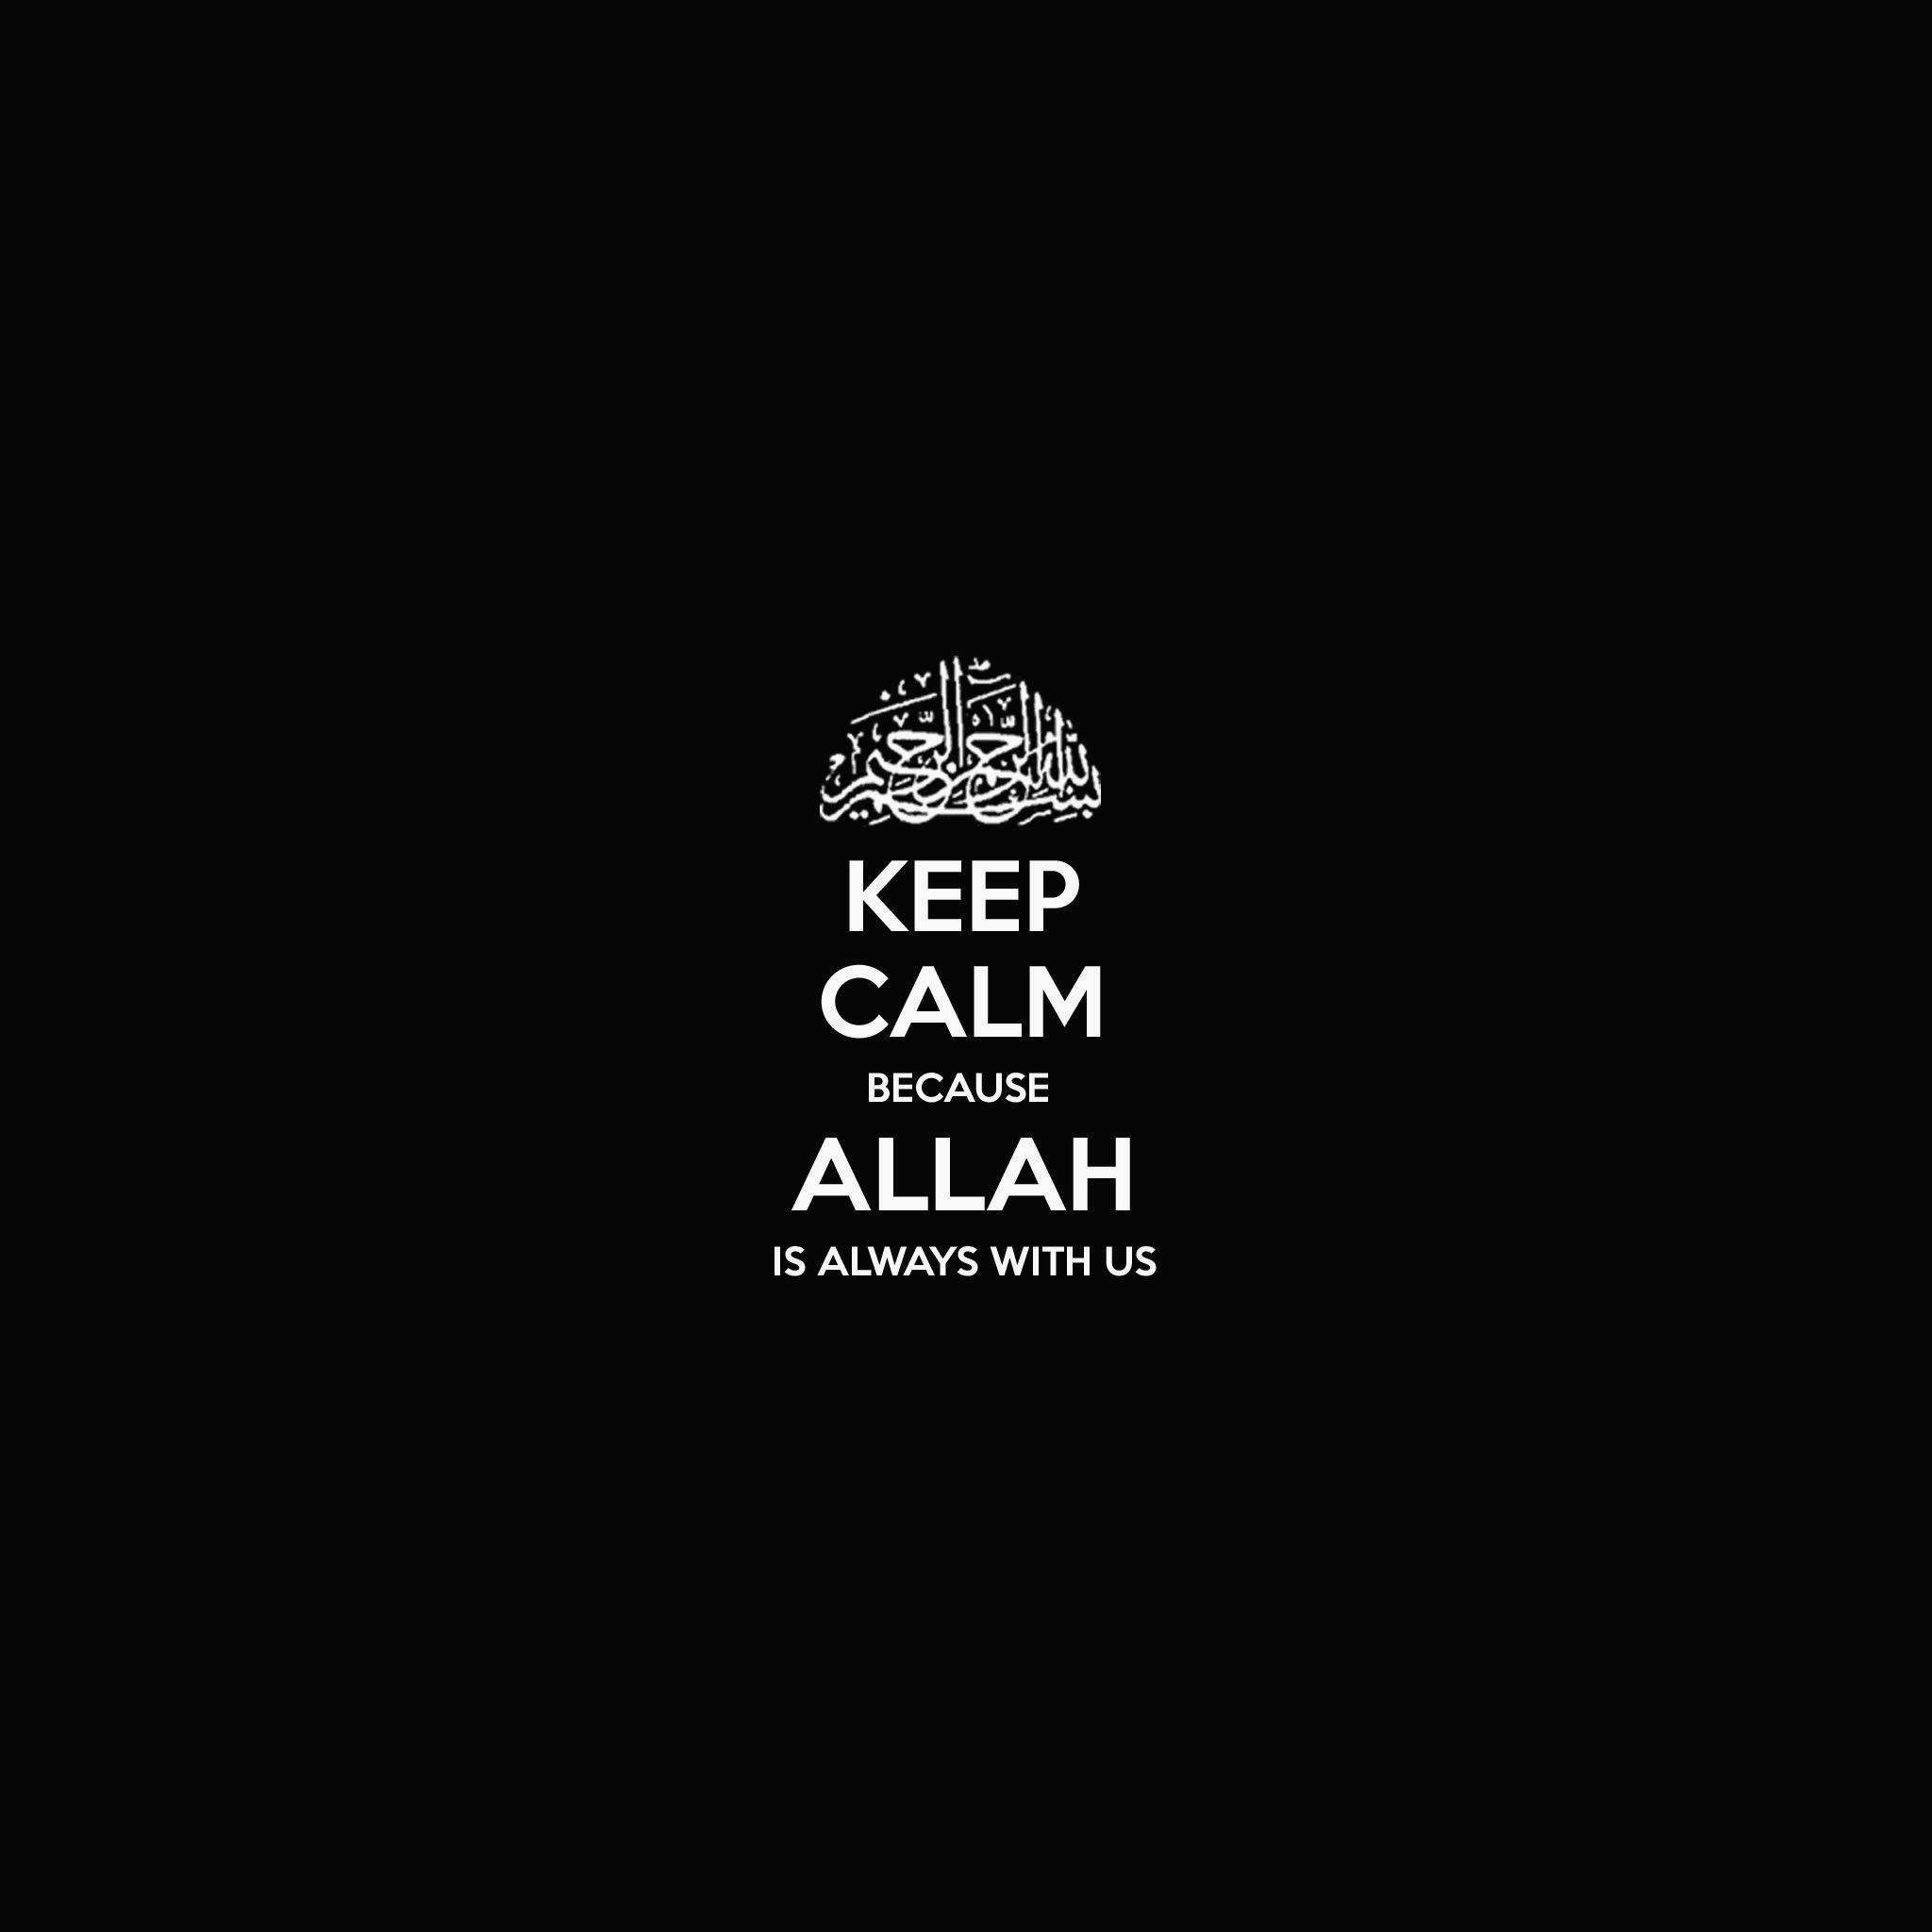 Allah Wallpaper 3d Posted By Ethan Anderson